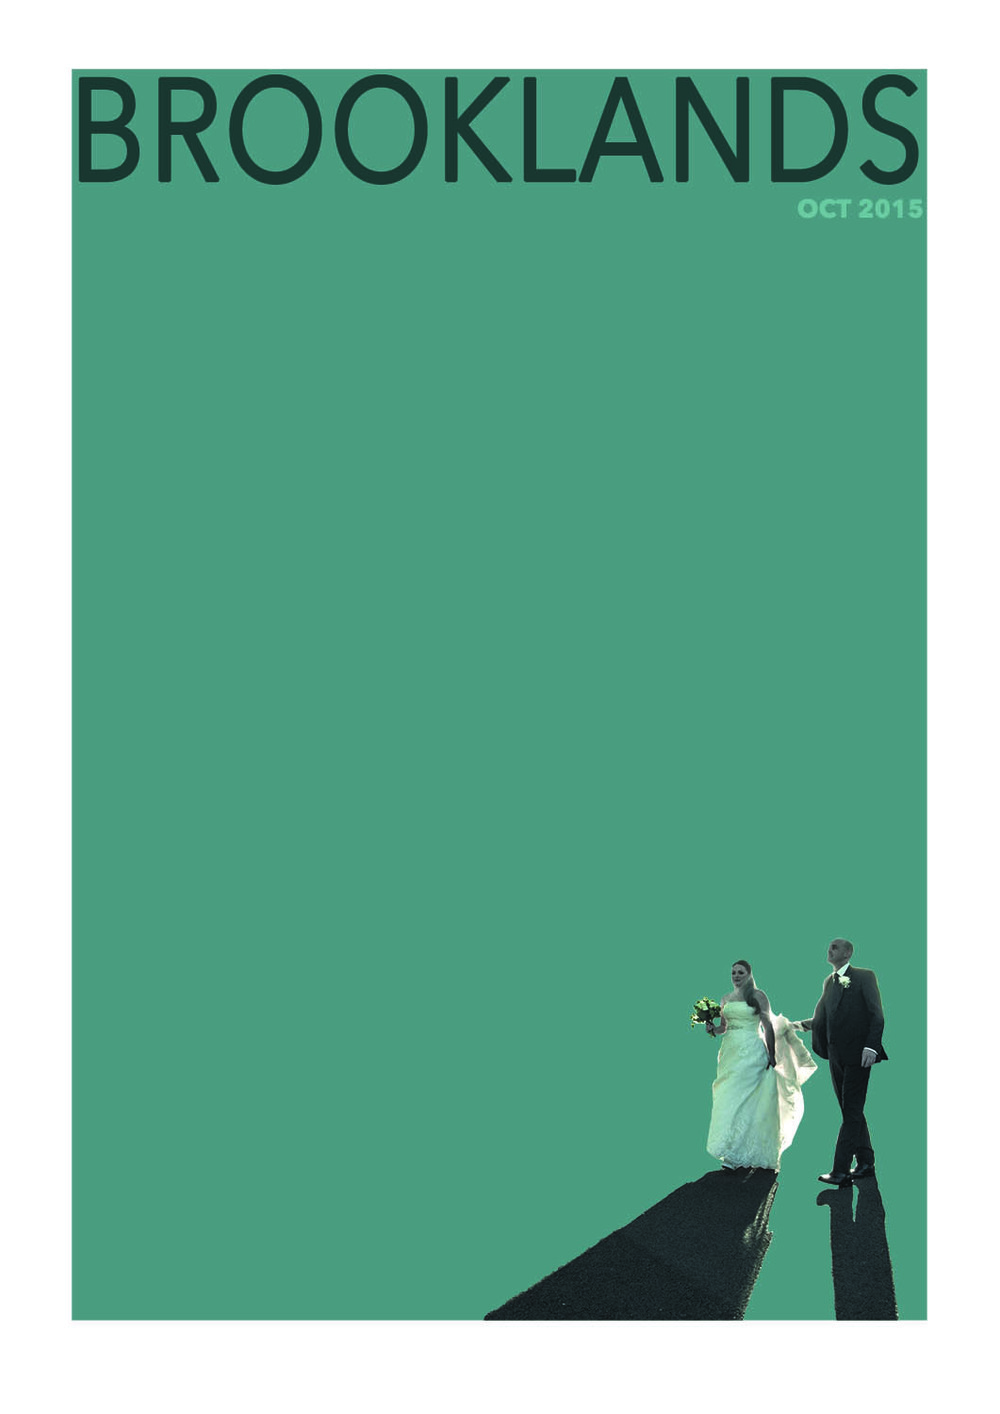 ALTERNATIVE-WEDDING-PHOTOGRAPHER-ART-POSTER-03.jpg